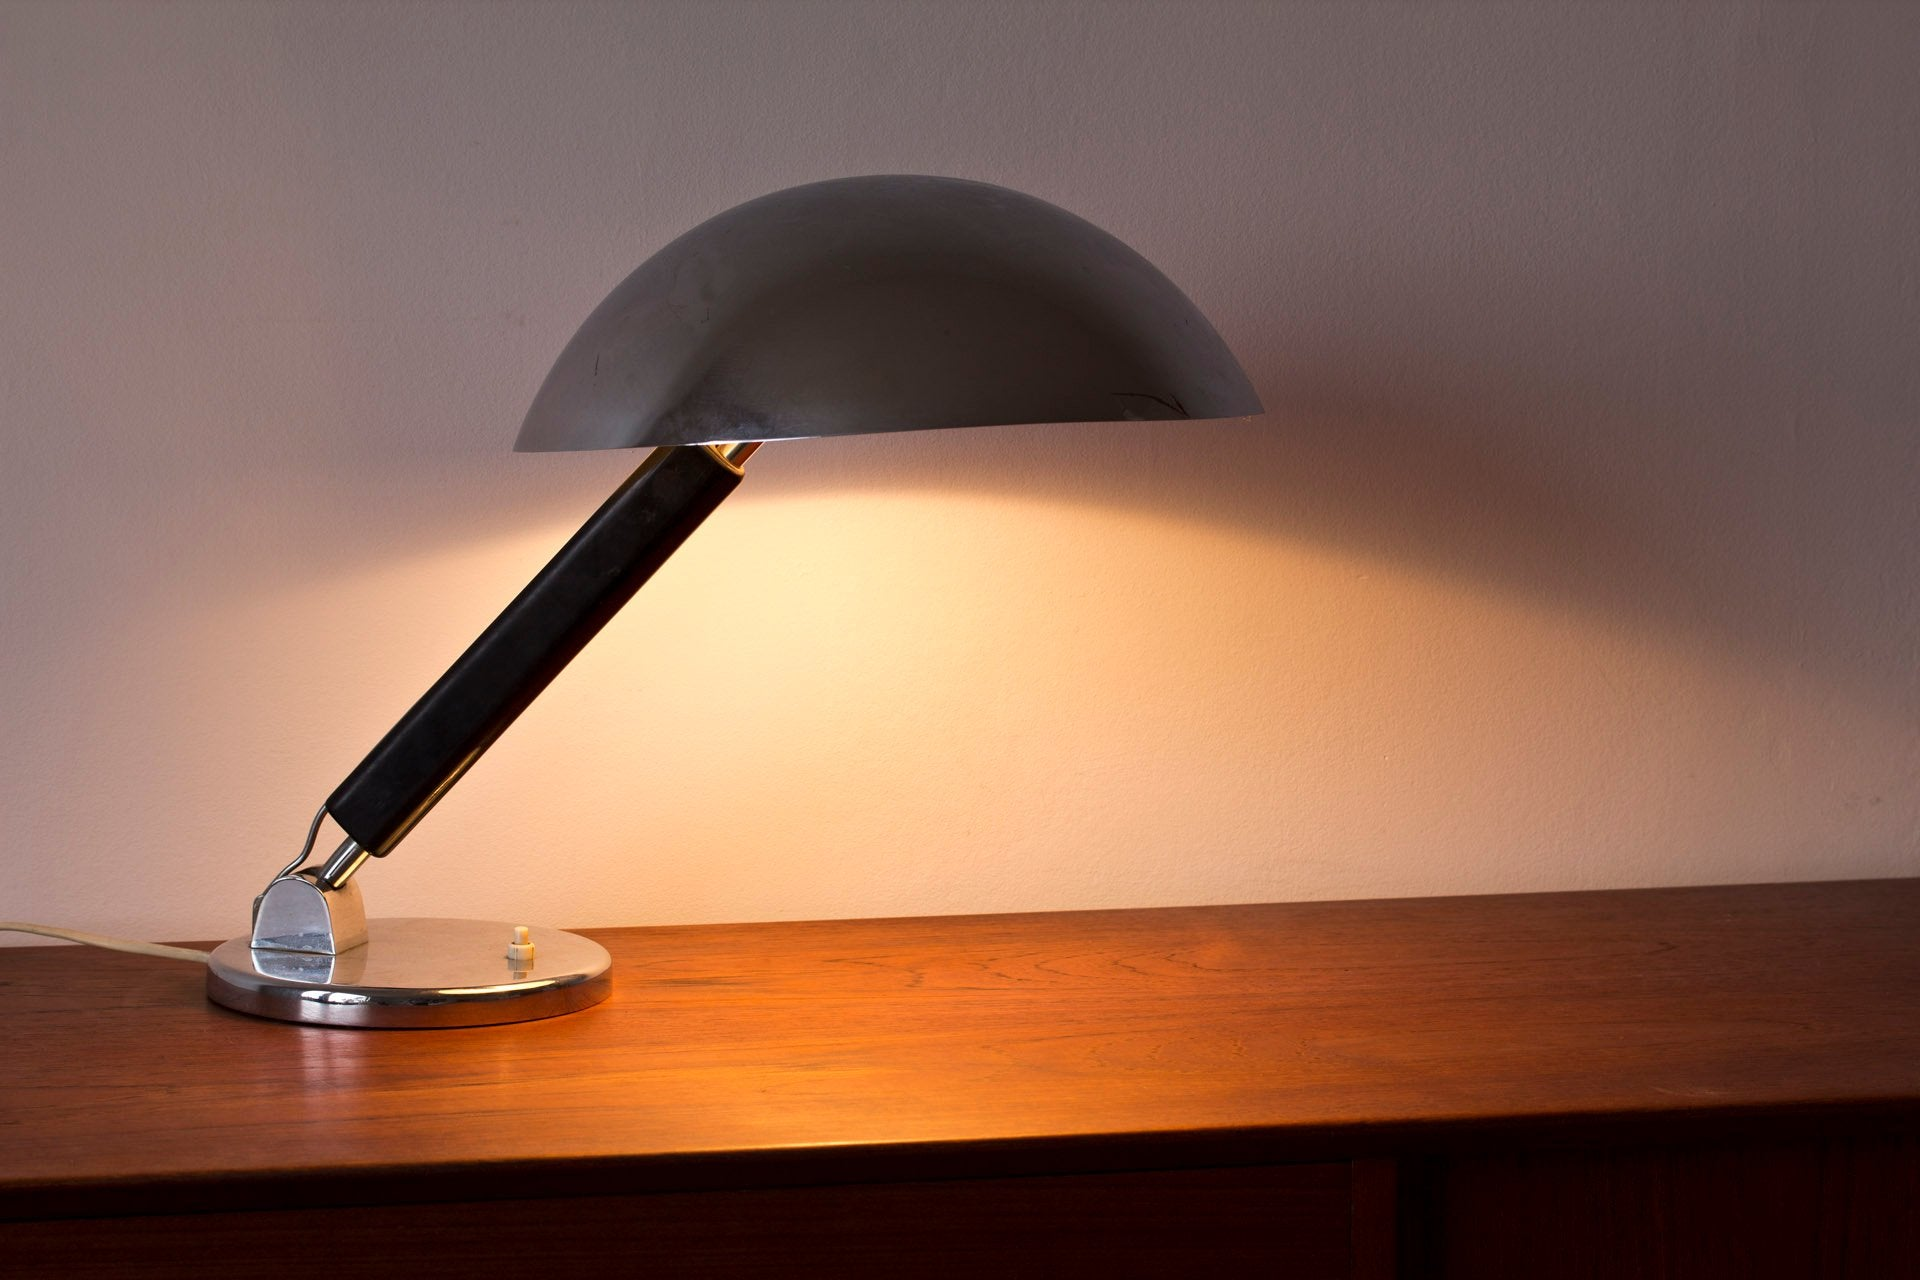 Table lamp by Karl Trabert